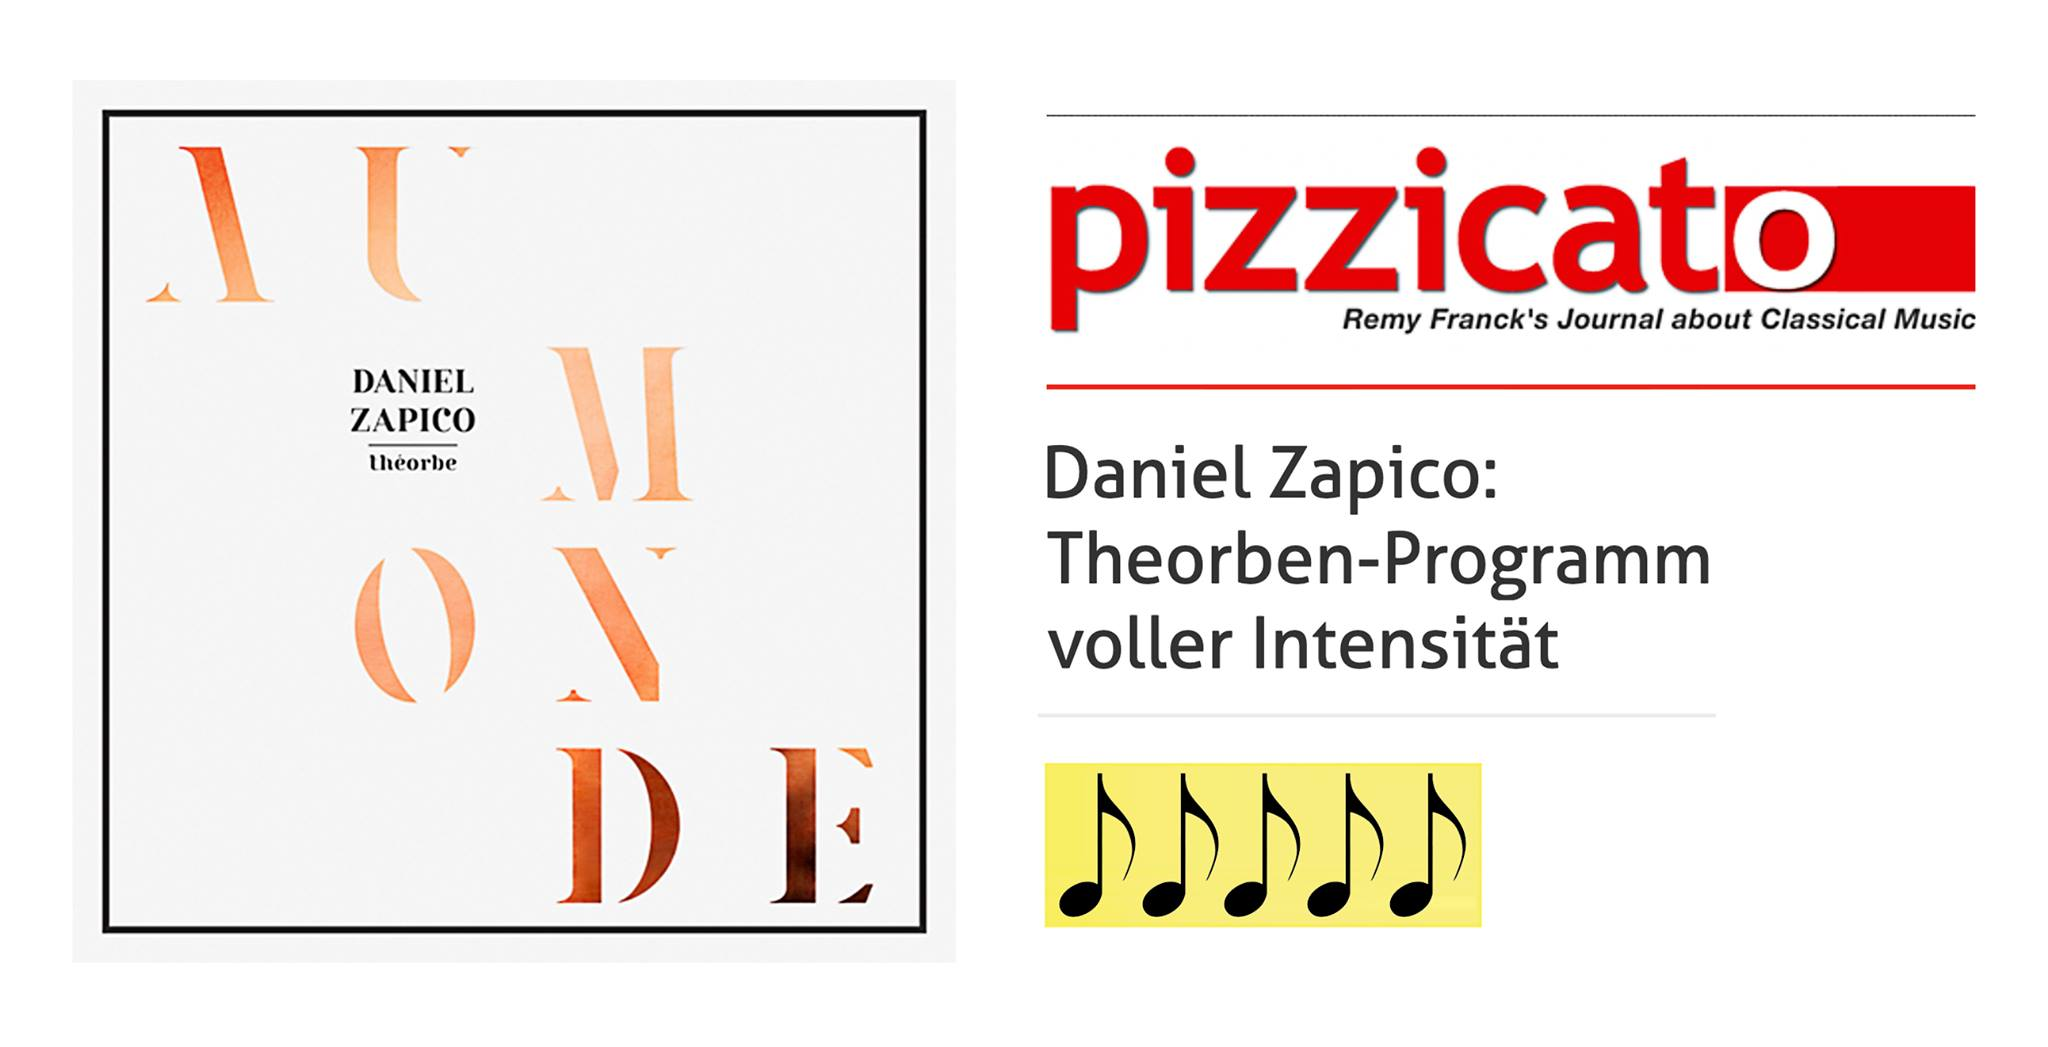 5 notes to AU MONDE in Pizzicato